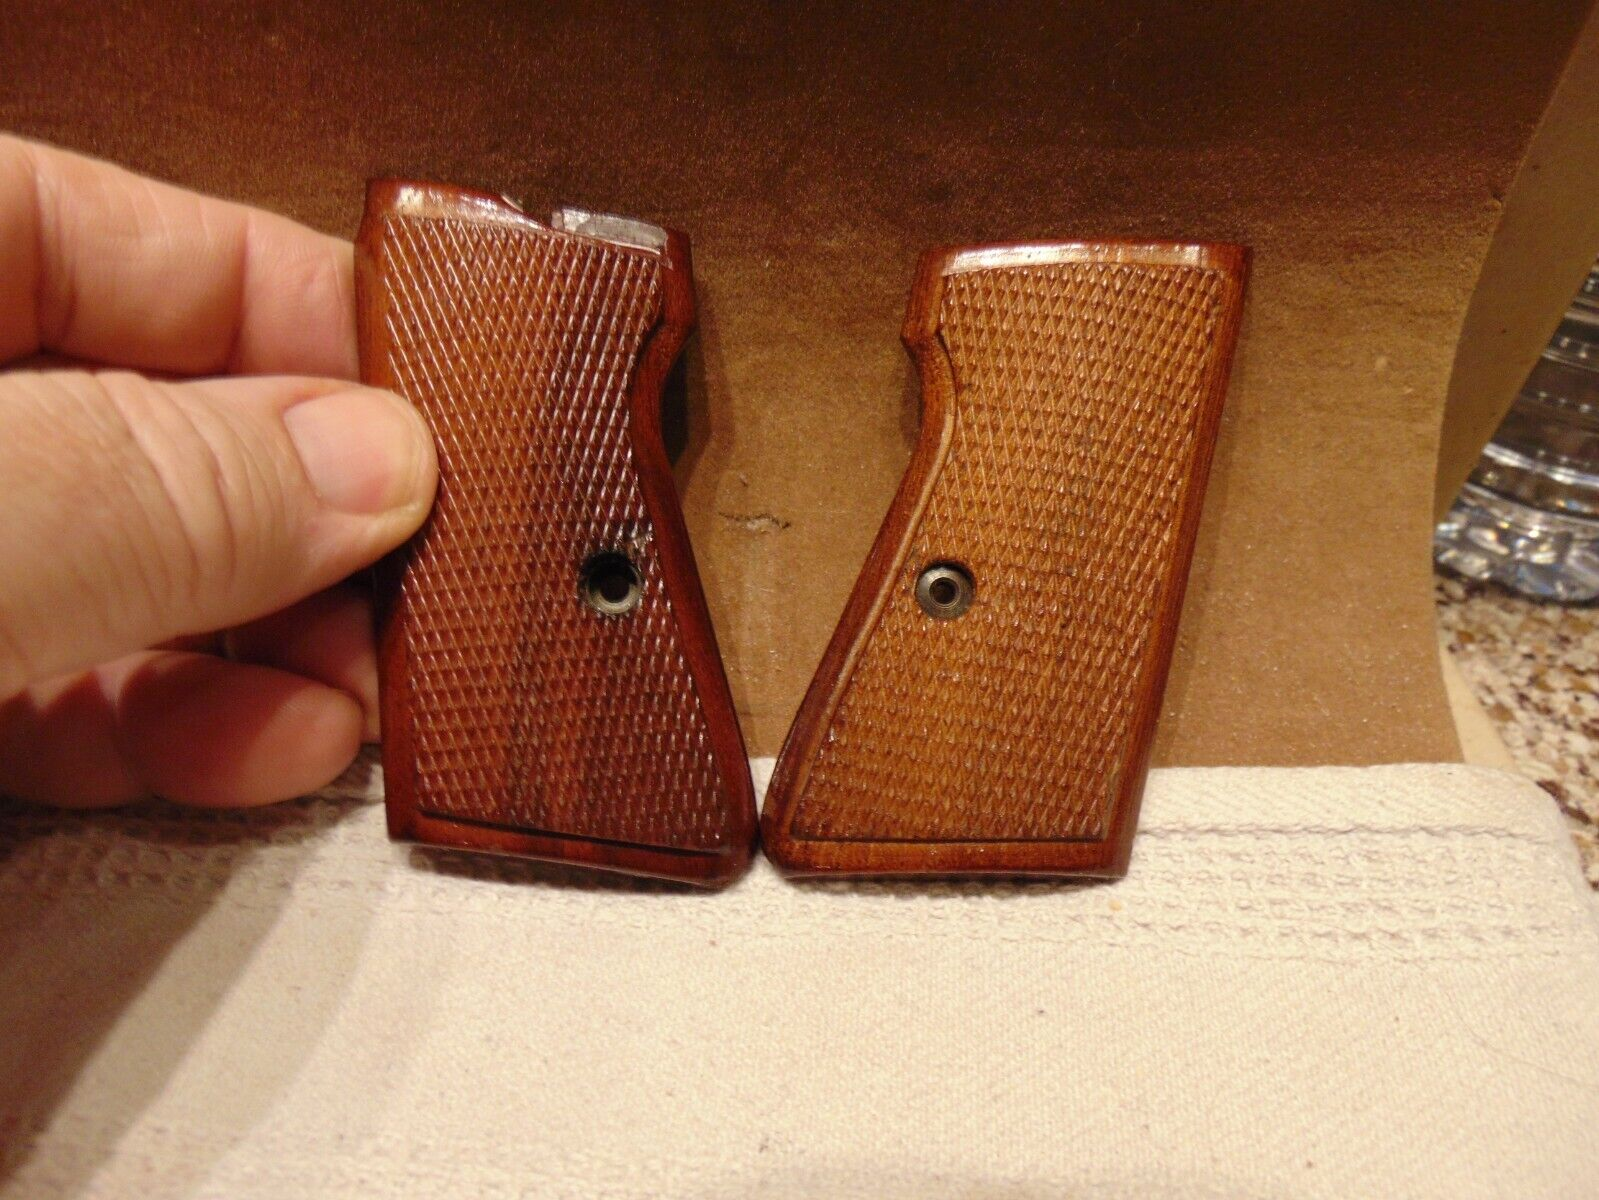 WOOD CHECKED PISTOL GRIPS MADE IN ITALY - $22.50